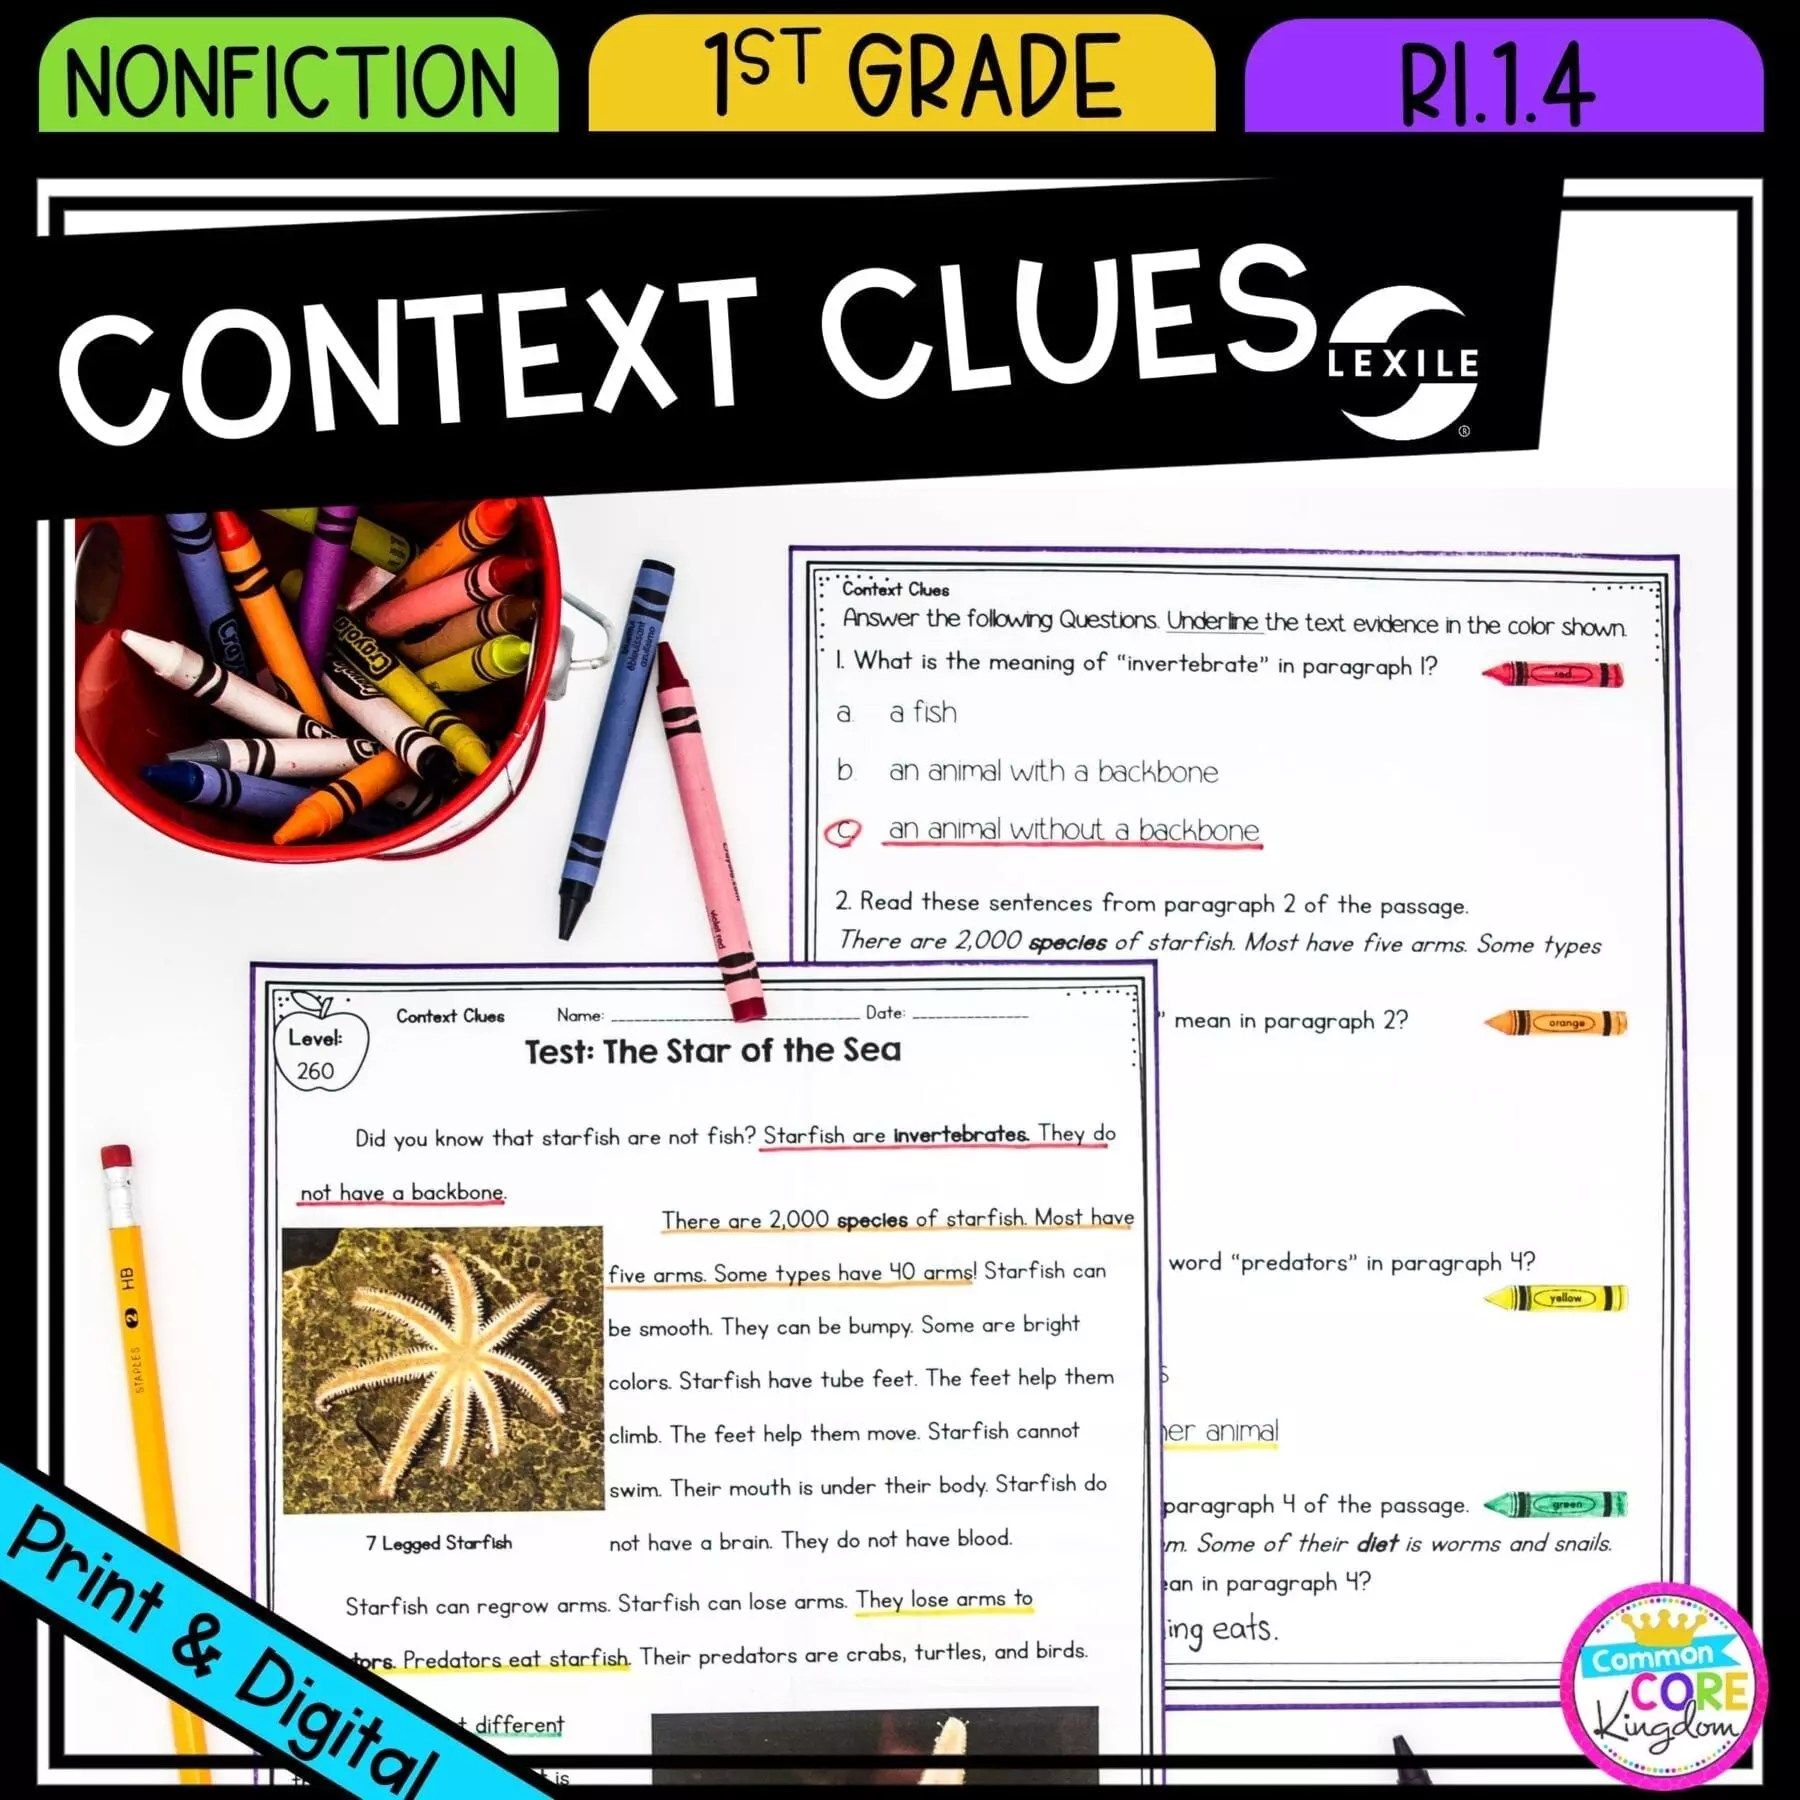 medium resolution of Context Clues in Nonfiction - 1st Grade - RI.1.4 Printable \u0026 Digital Google  Slides Distance Learning   Common Core Kingdom